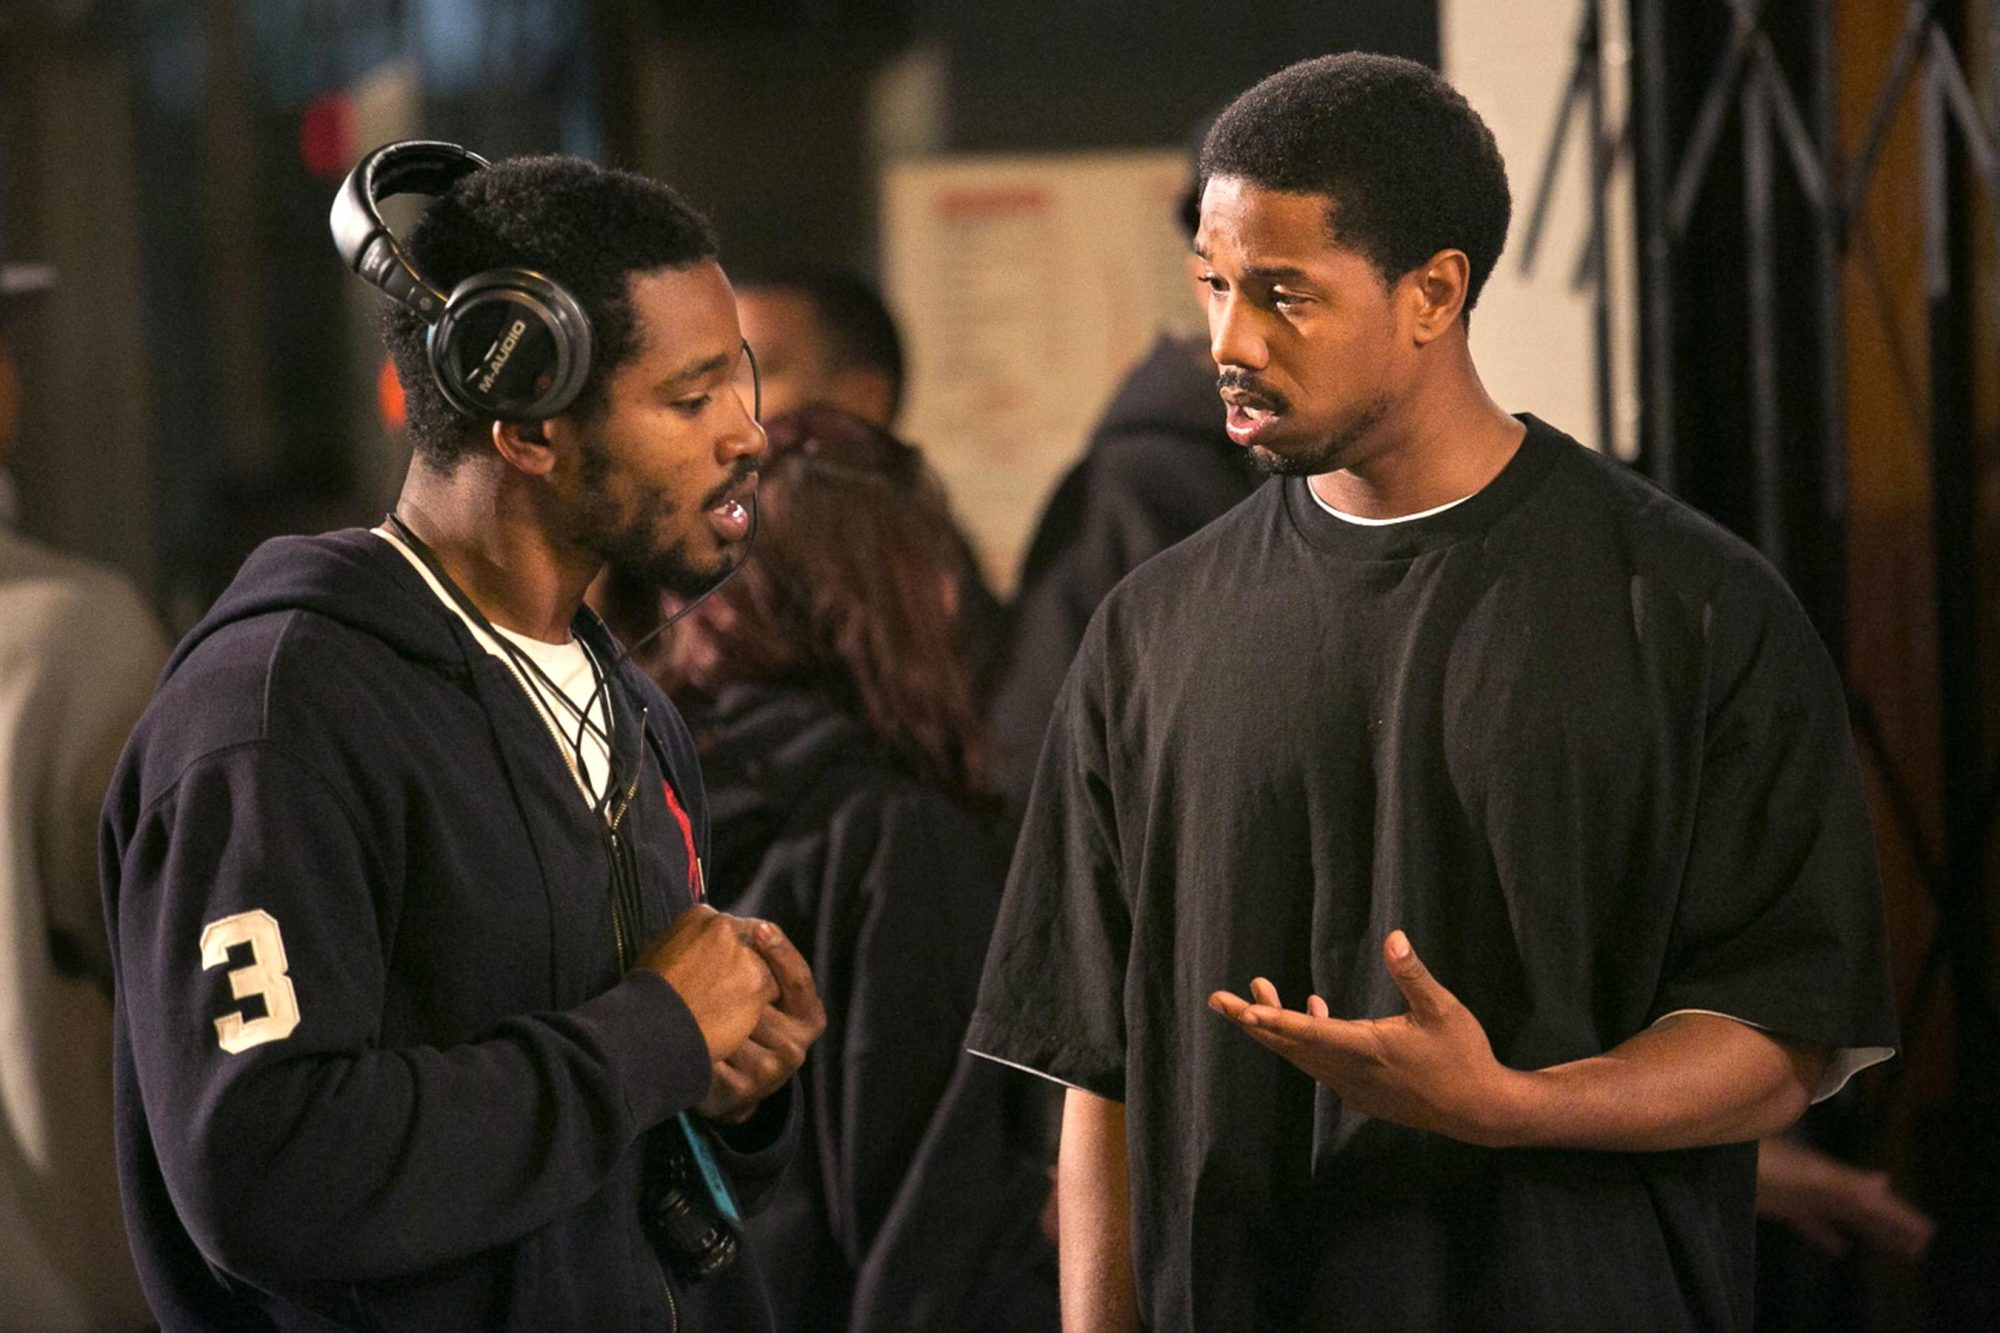 Fruitvale Station - Ryan Coogler and Michael B. Jordan CR: Rhee Bevere/TWC